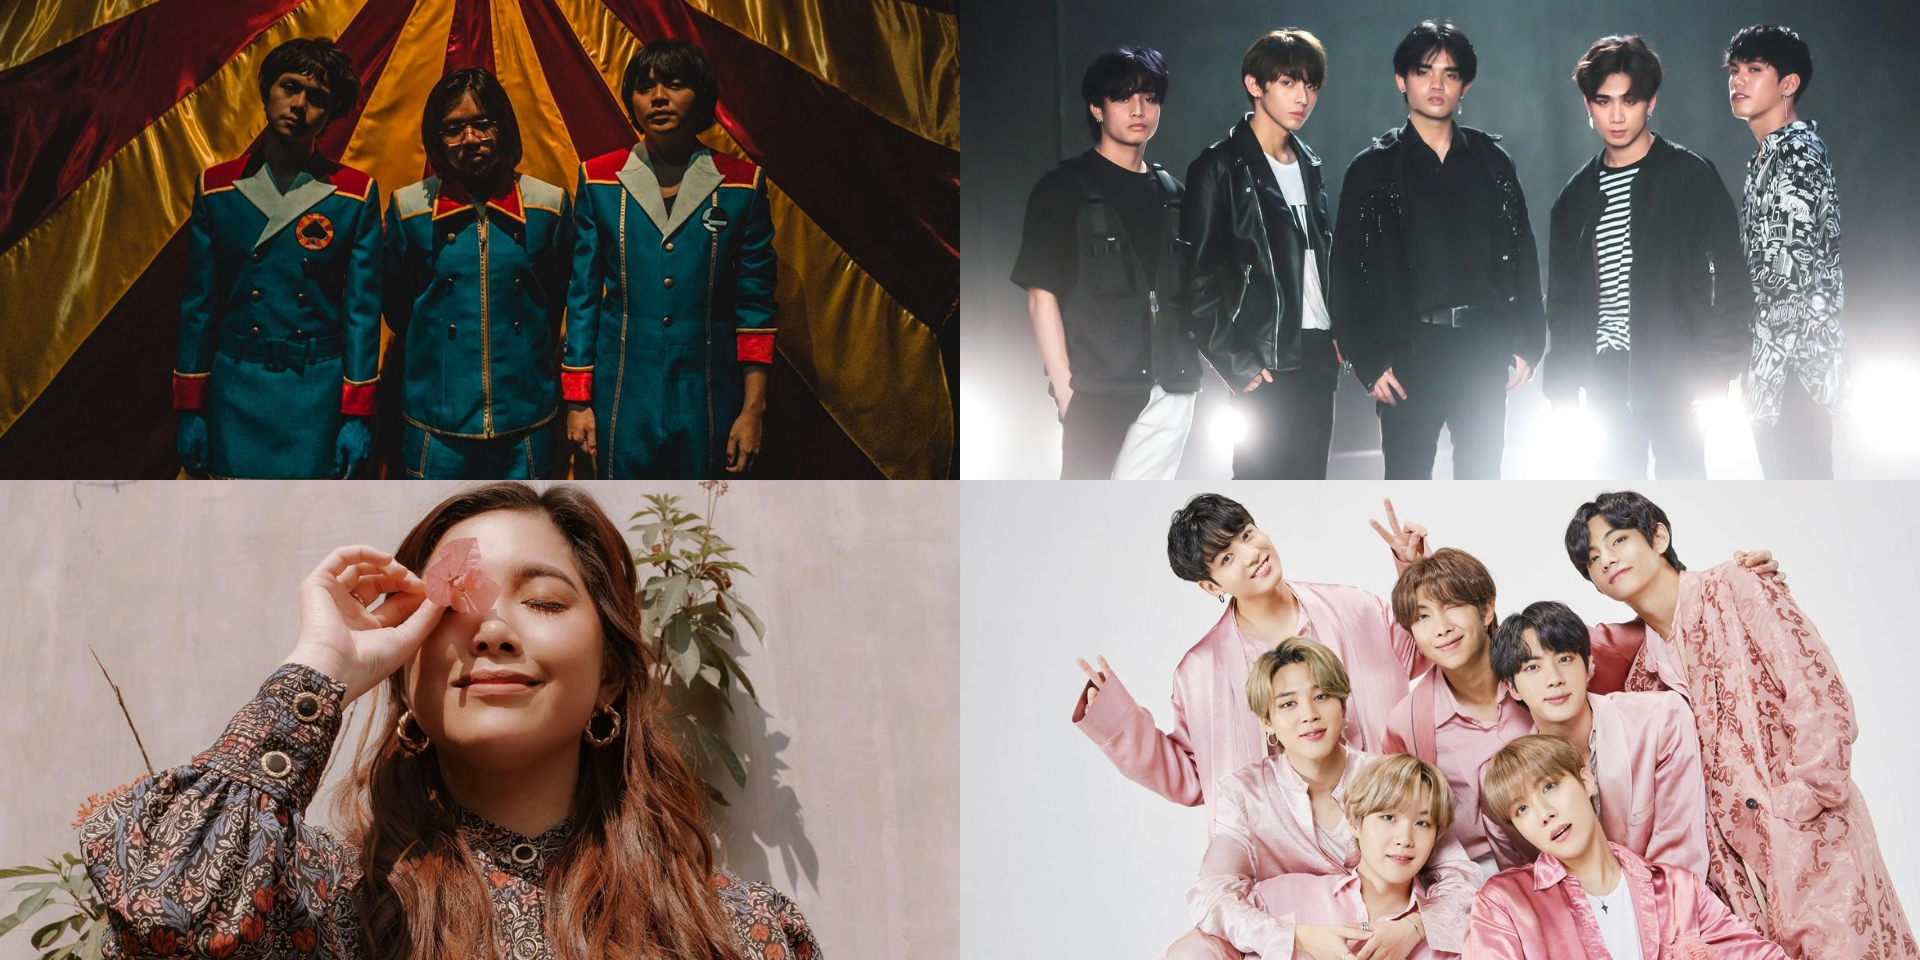 SB19, Moira, IV of Spades, BTS, and more win at the 2020 MYX Awards